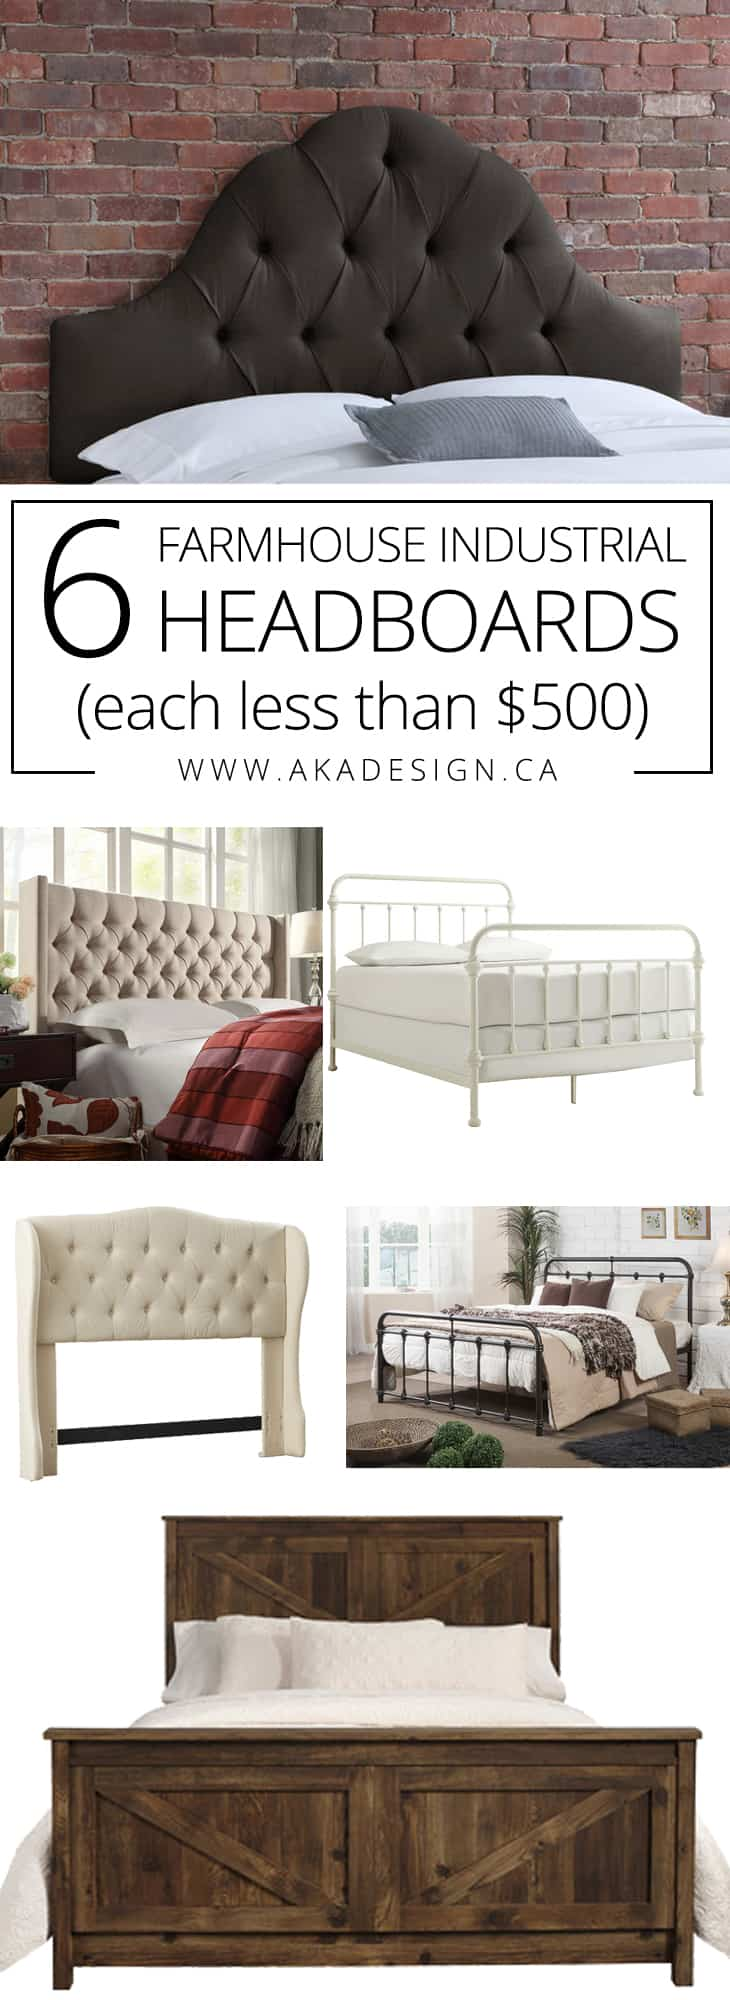 10 Farmhouse Beds for Under $500